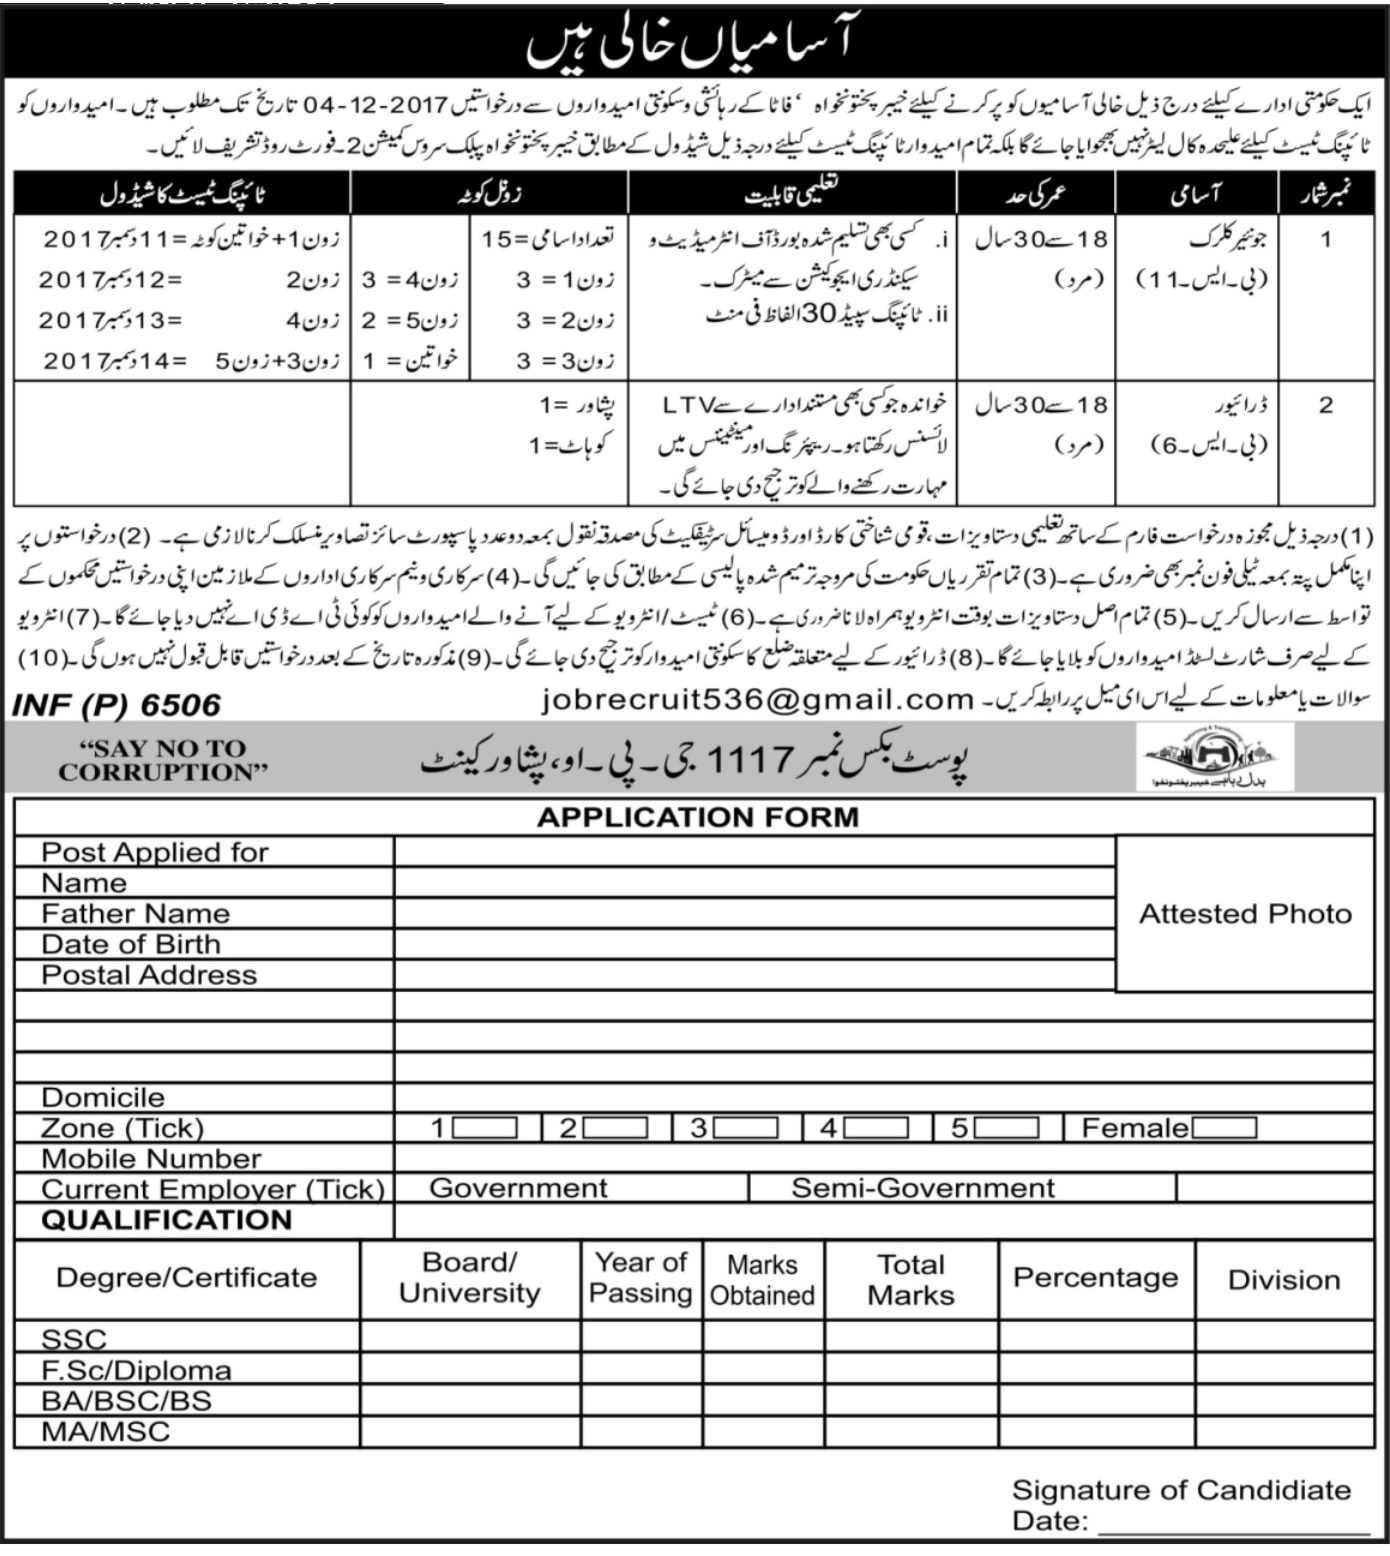 Khyber Pakhtunkhwa Public Service Commission Jang Newspaper KPPSC Jobs 16/01/2018